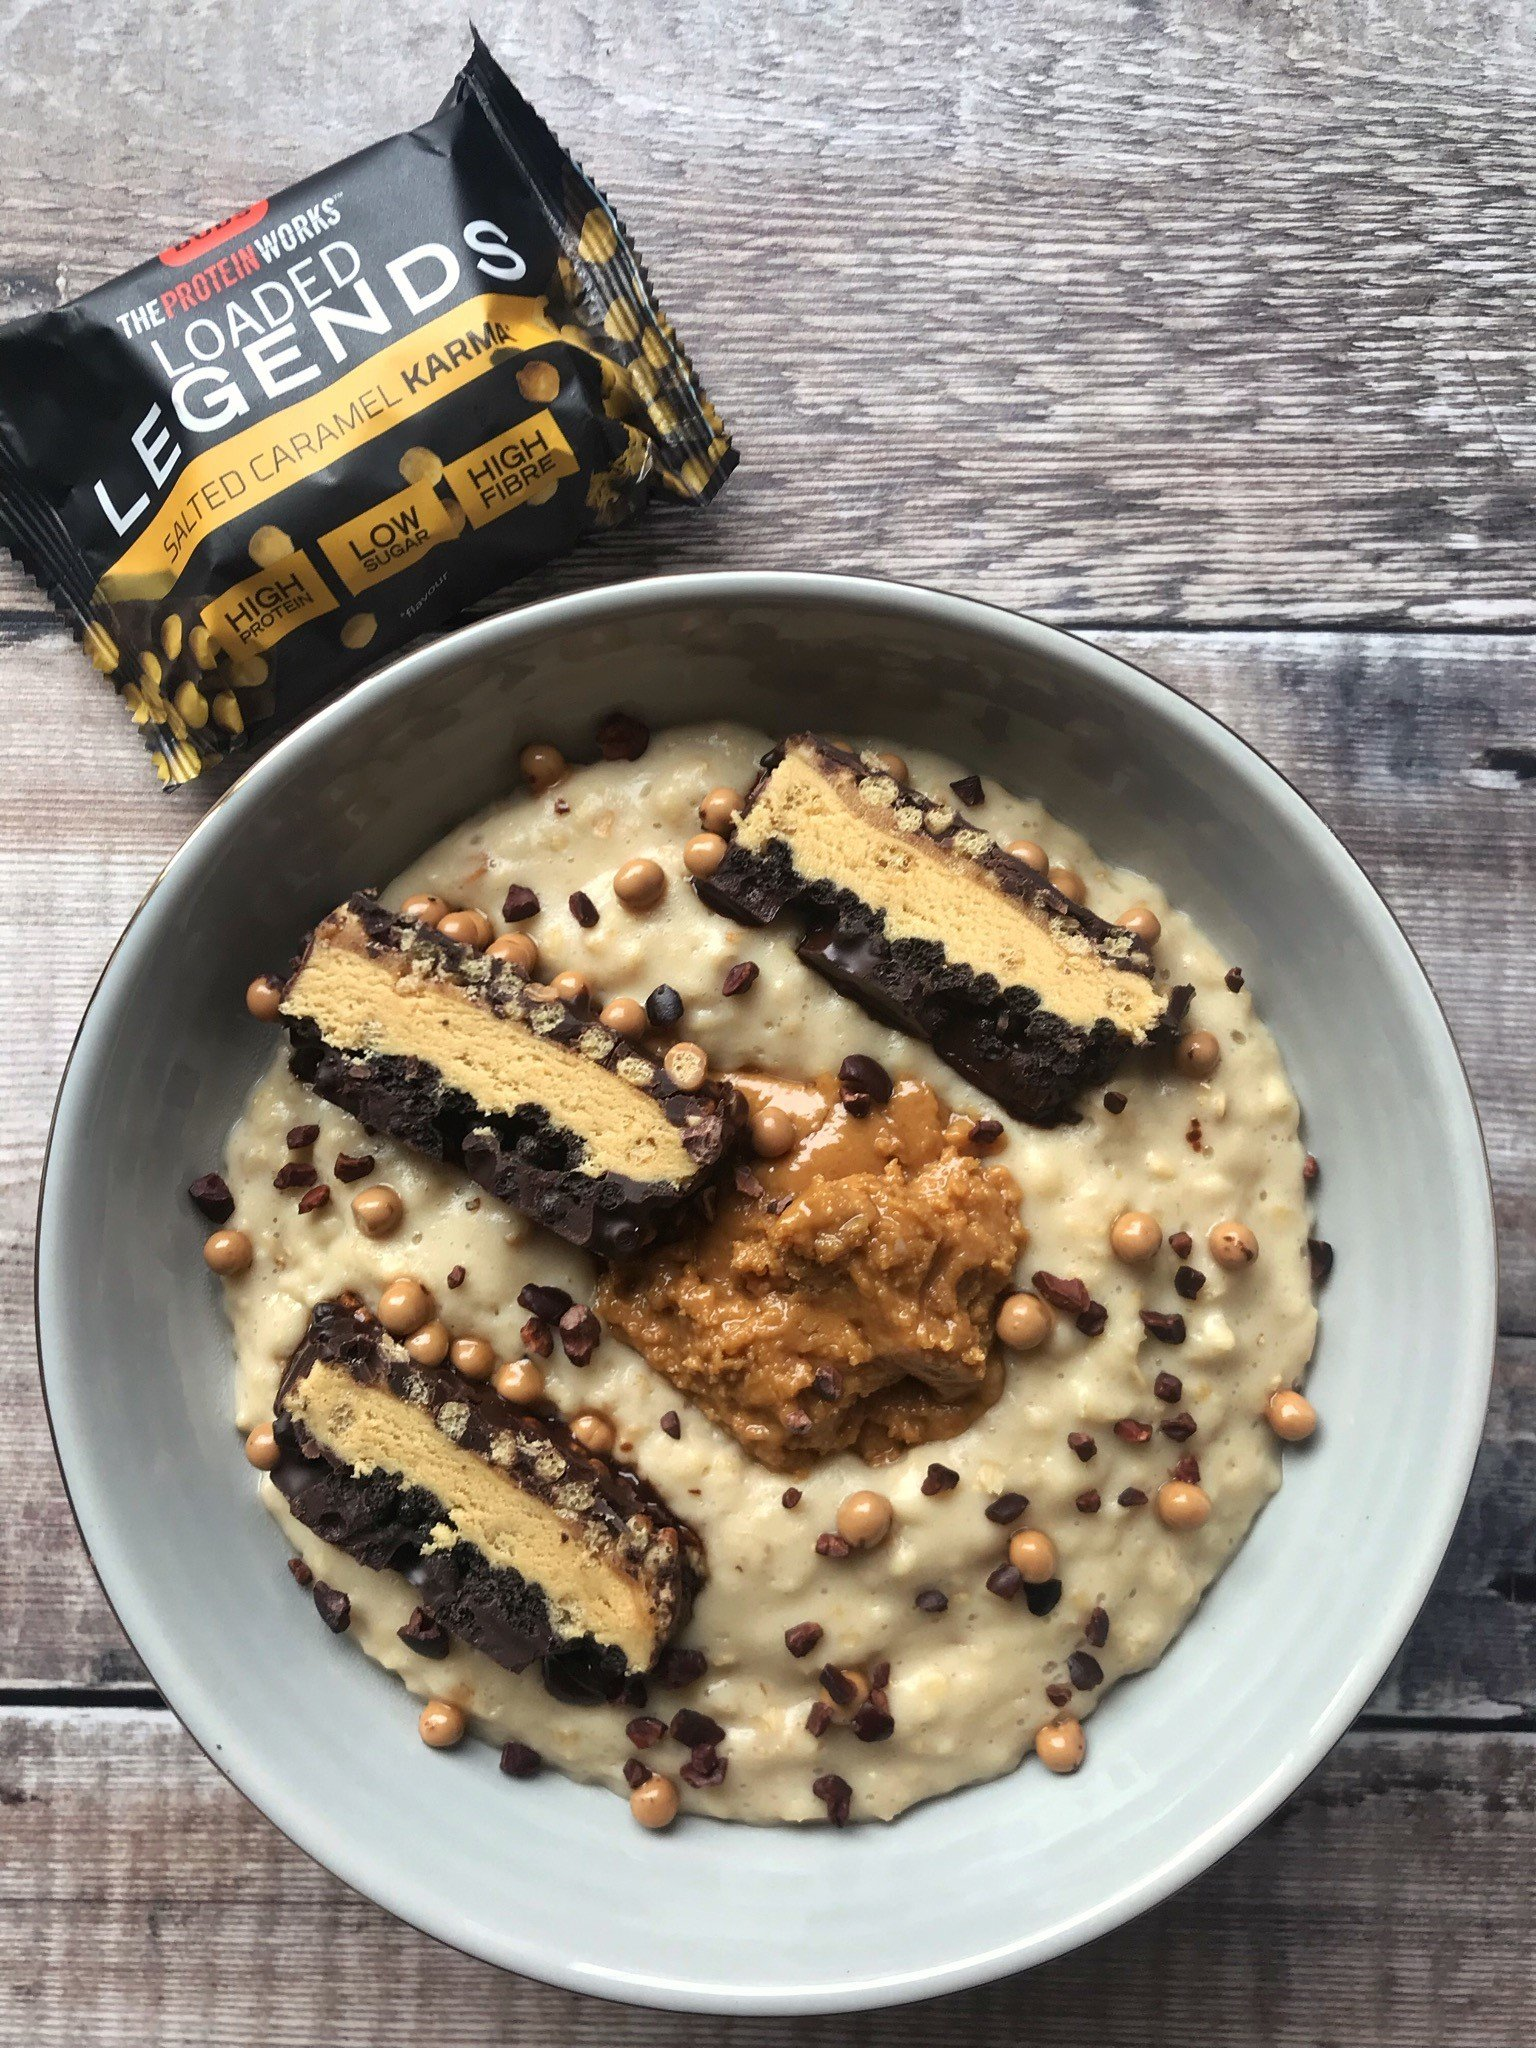 Salted Caramel Protein Oats Recipe